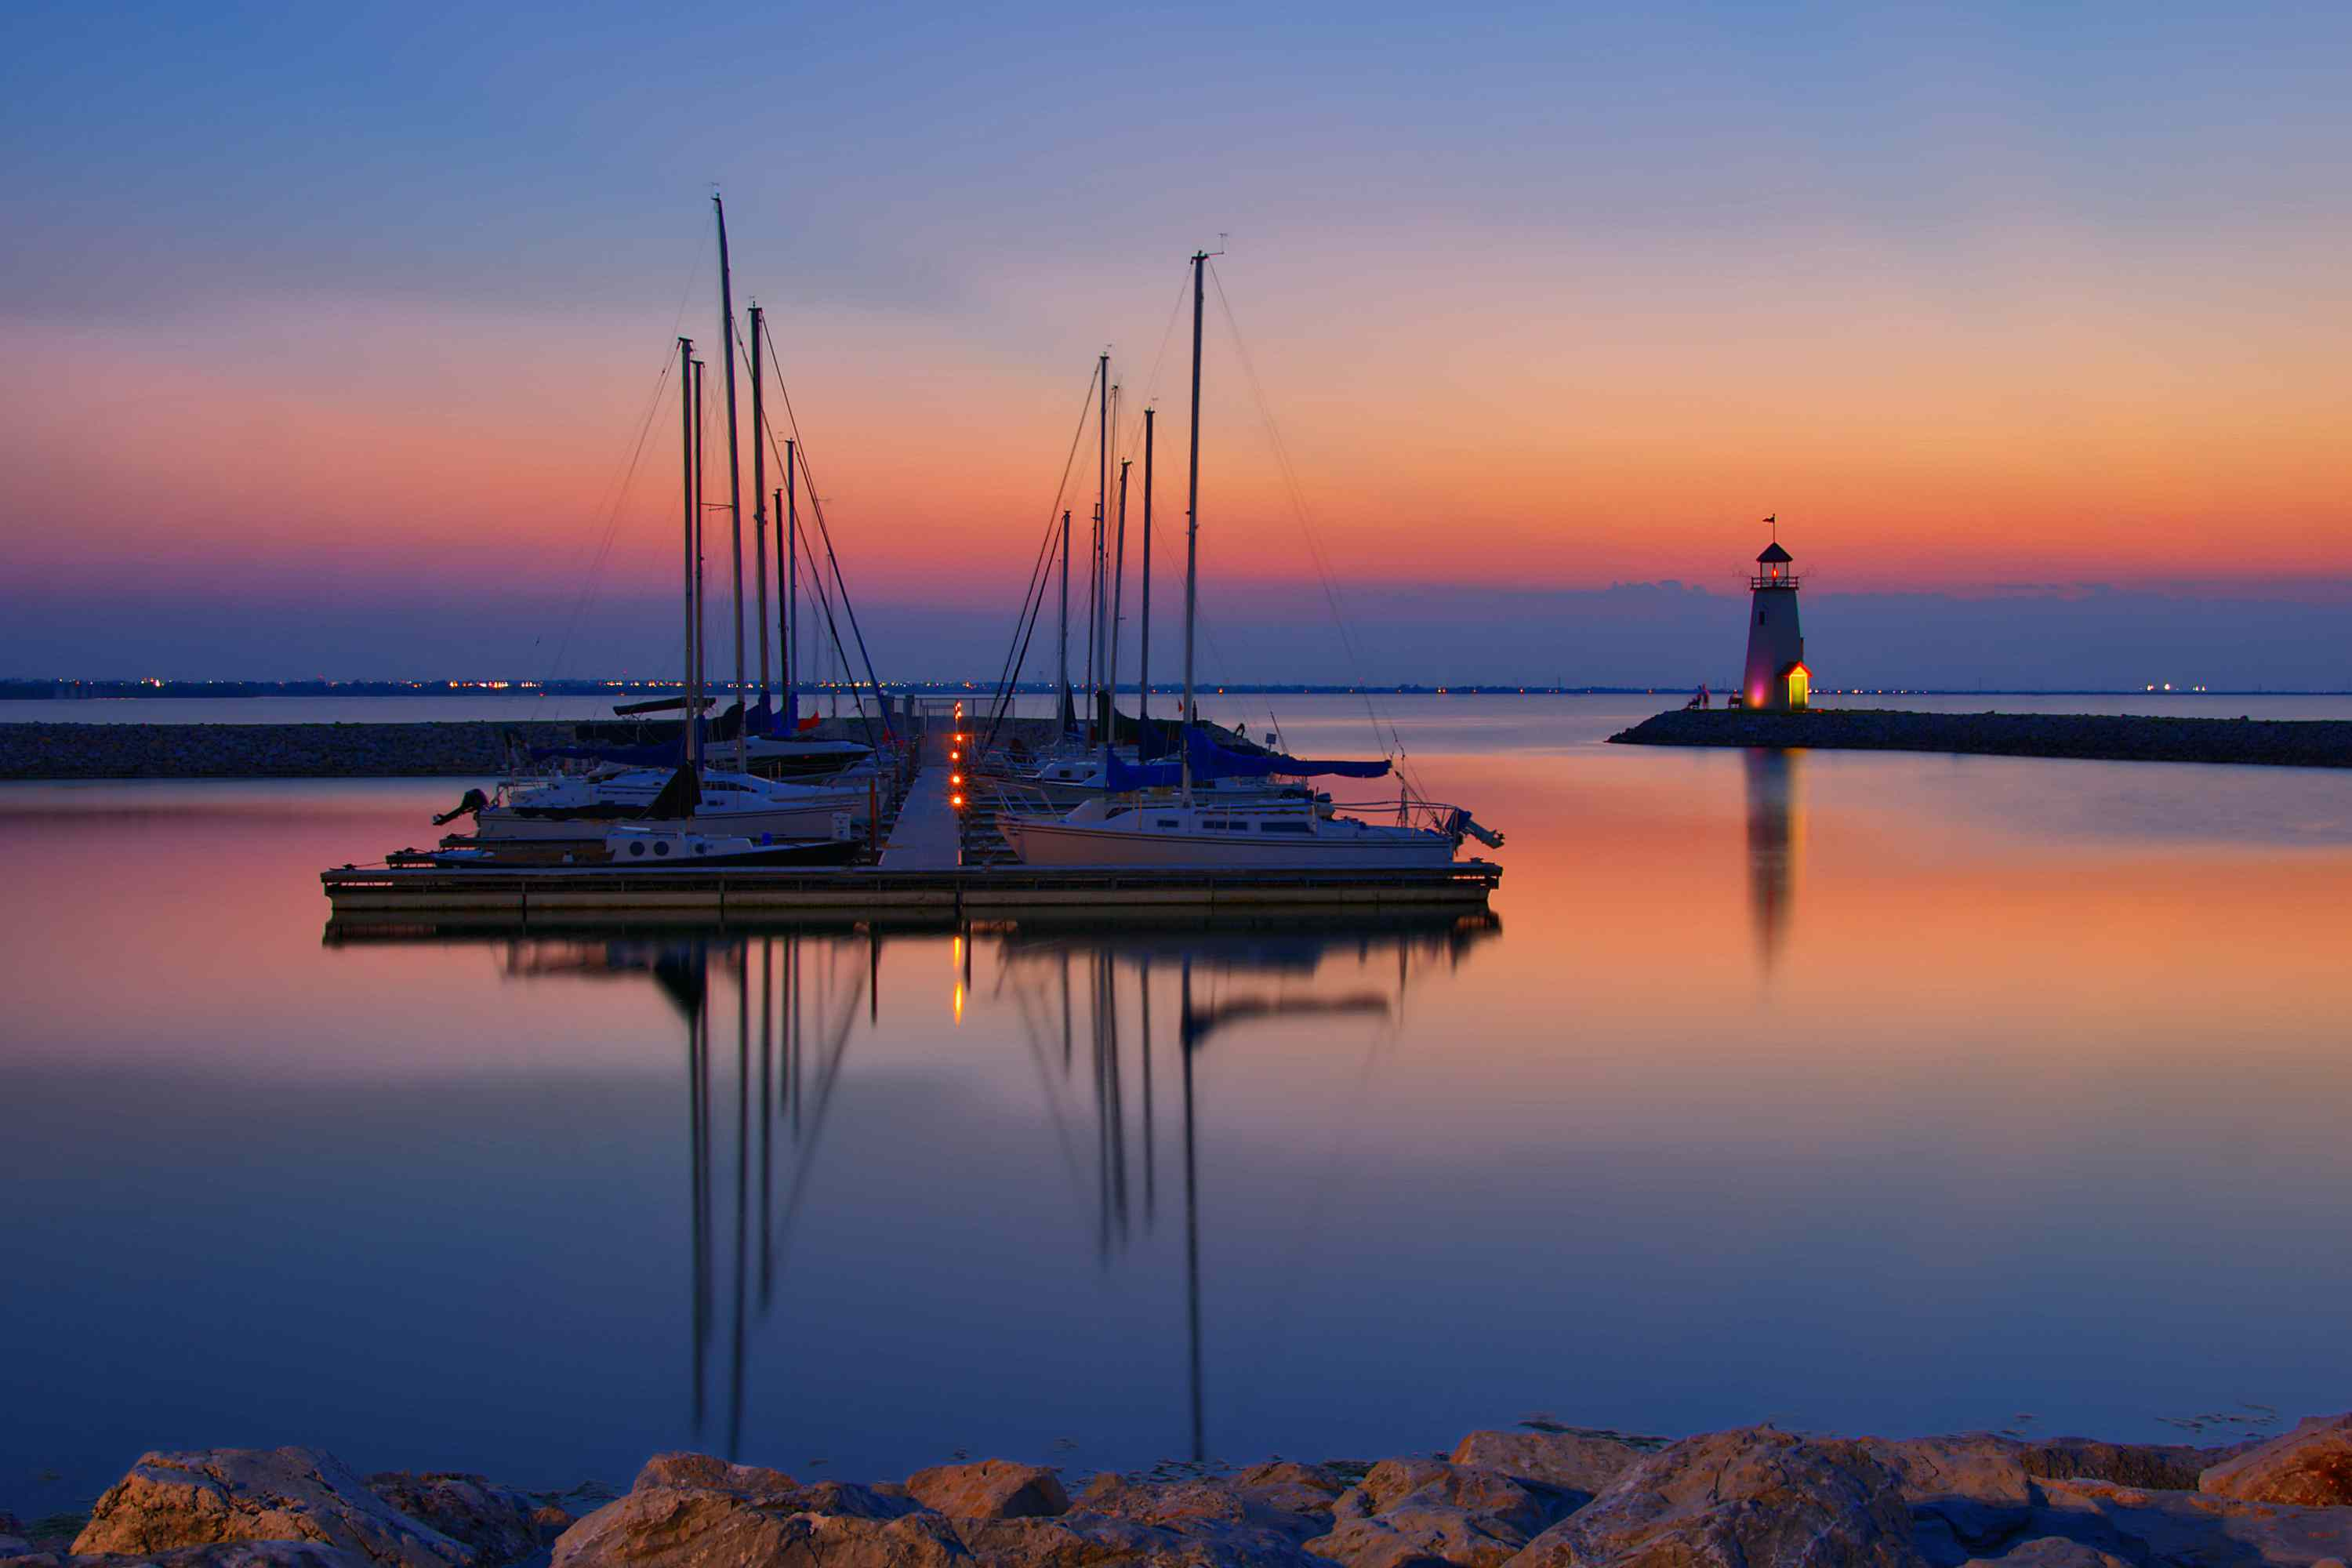 Lake Hefner with boats at sunset lighthouse in background, Oklahoma City.